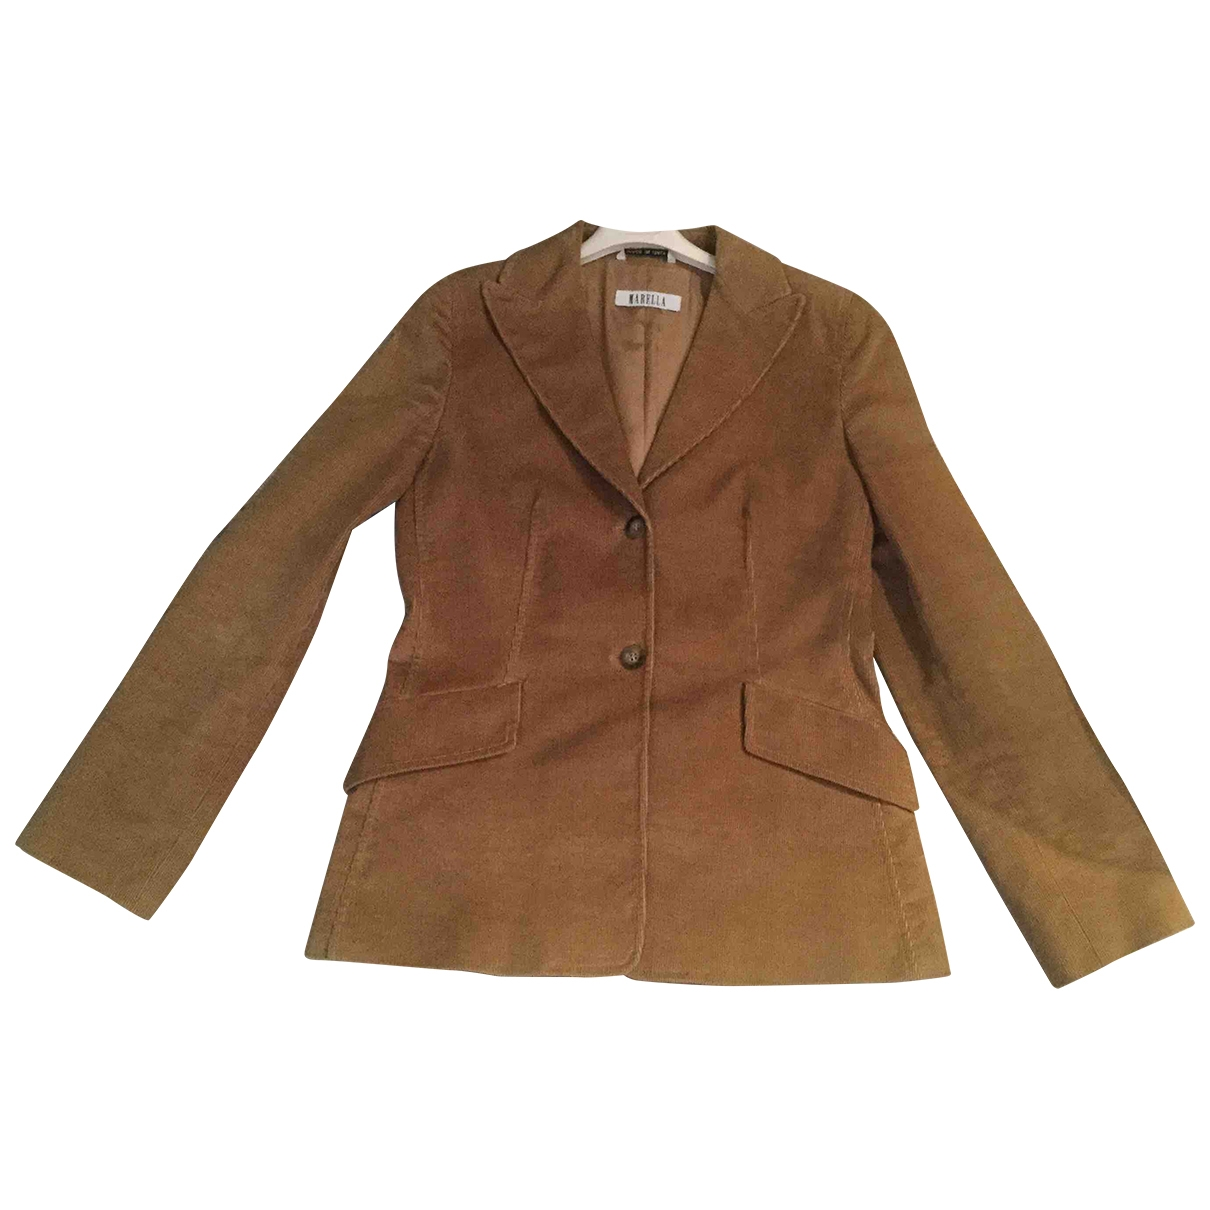 Marella \N Beige Velvet jacket for Women 42 IT